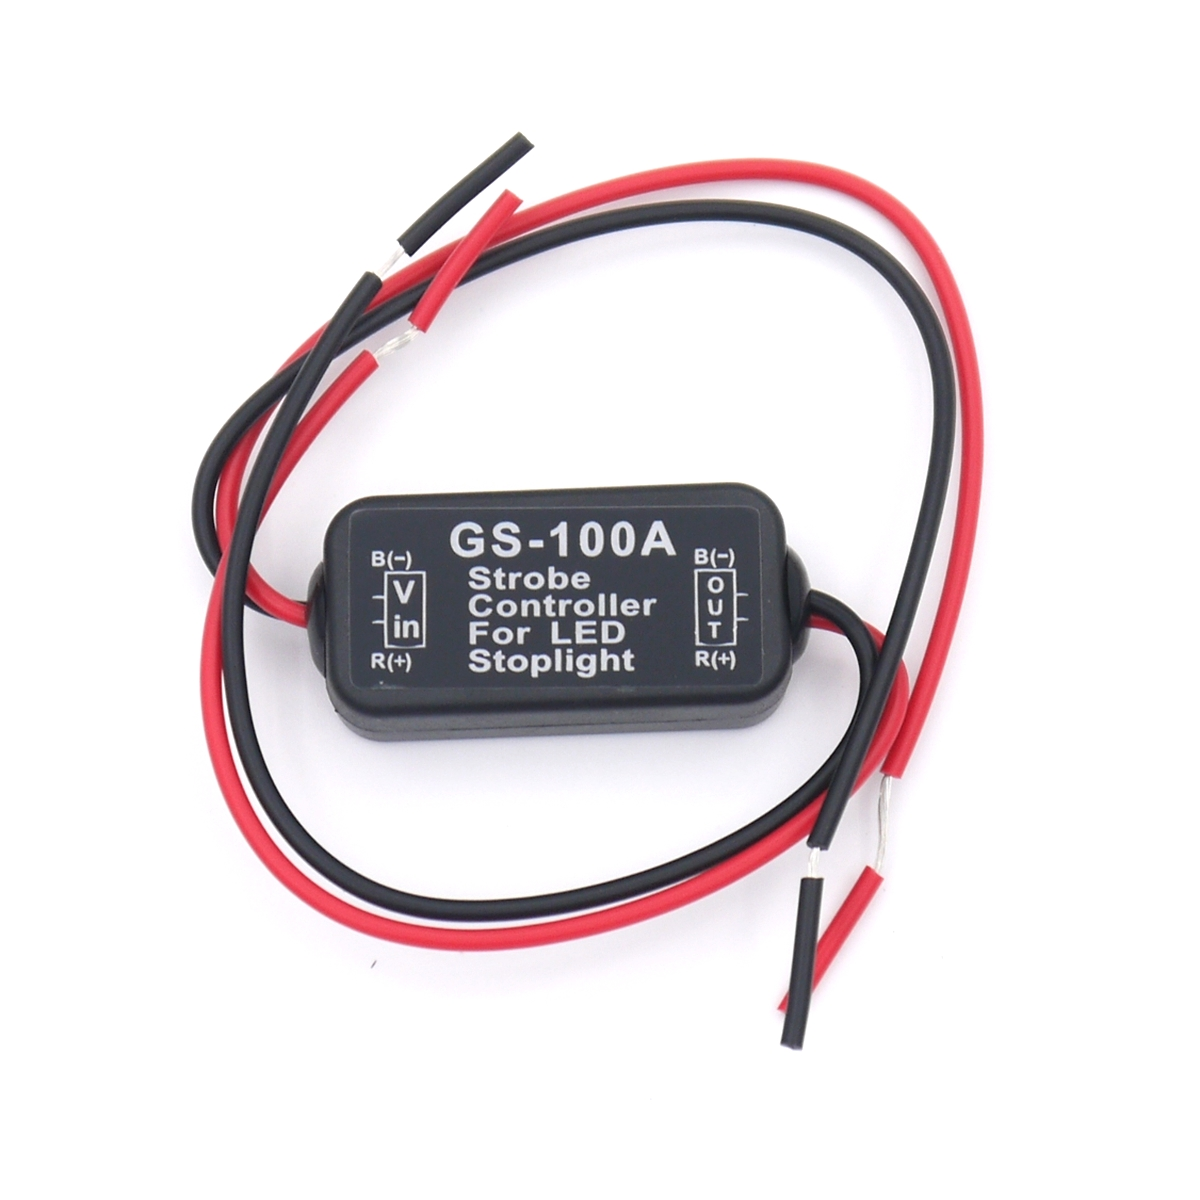 Eonstime Mini Gs 100a Flash Strobe Controller Flasher Module For Car 200w Lamp Led Brake Stop Light 12v 24v In Assembly From Automobiles Motorcycles